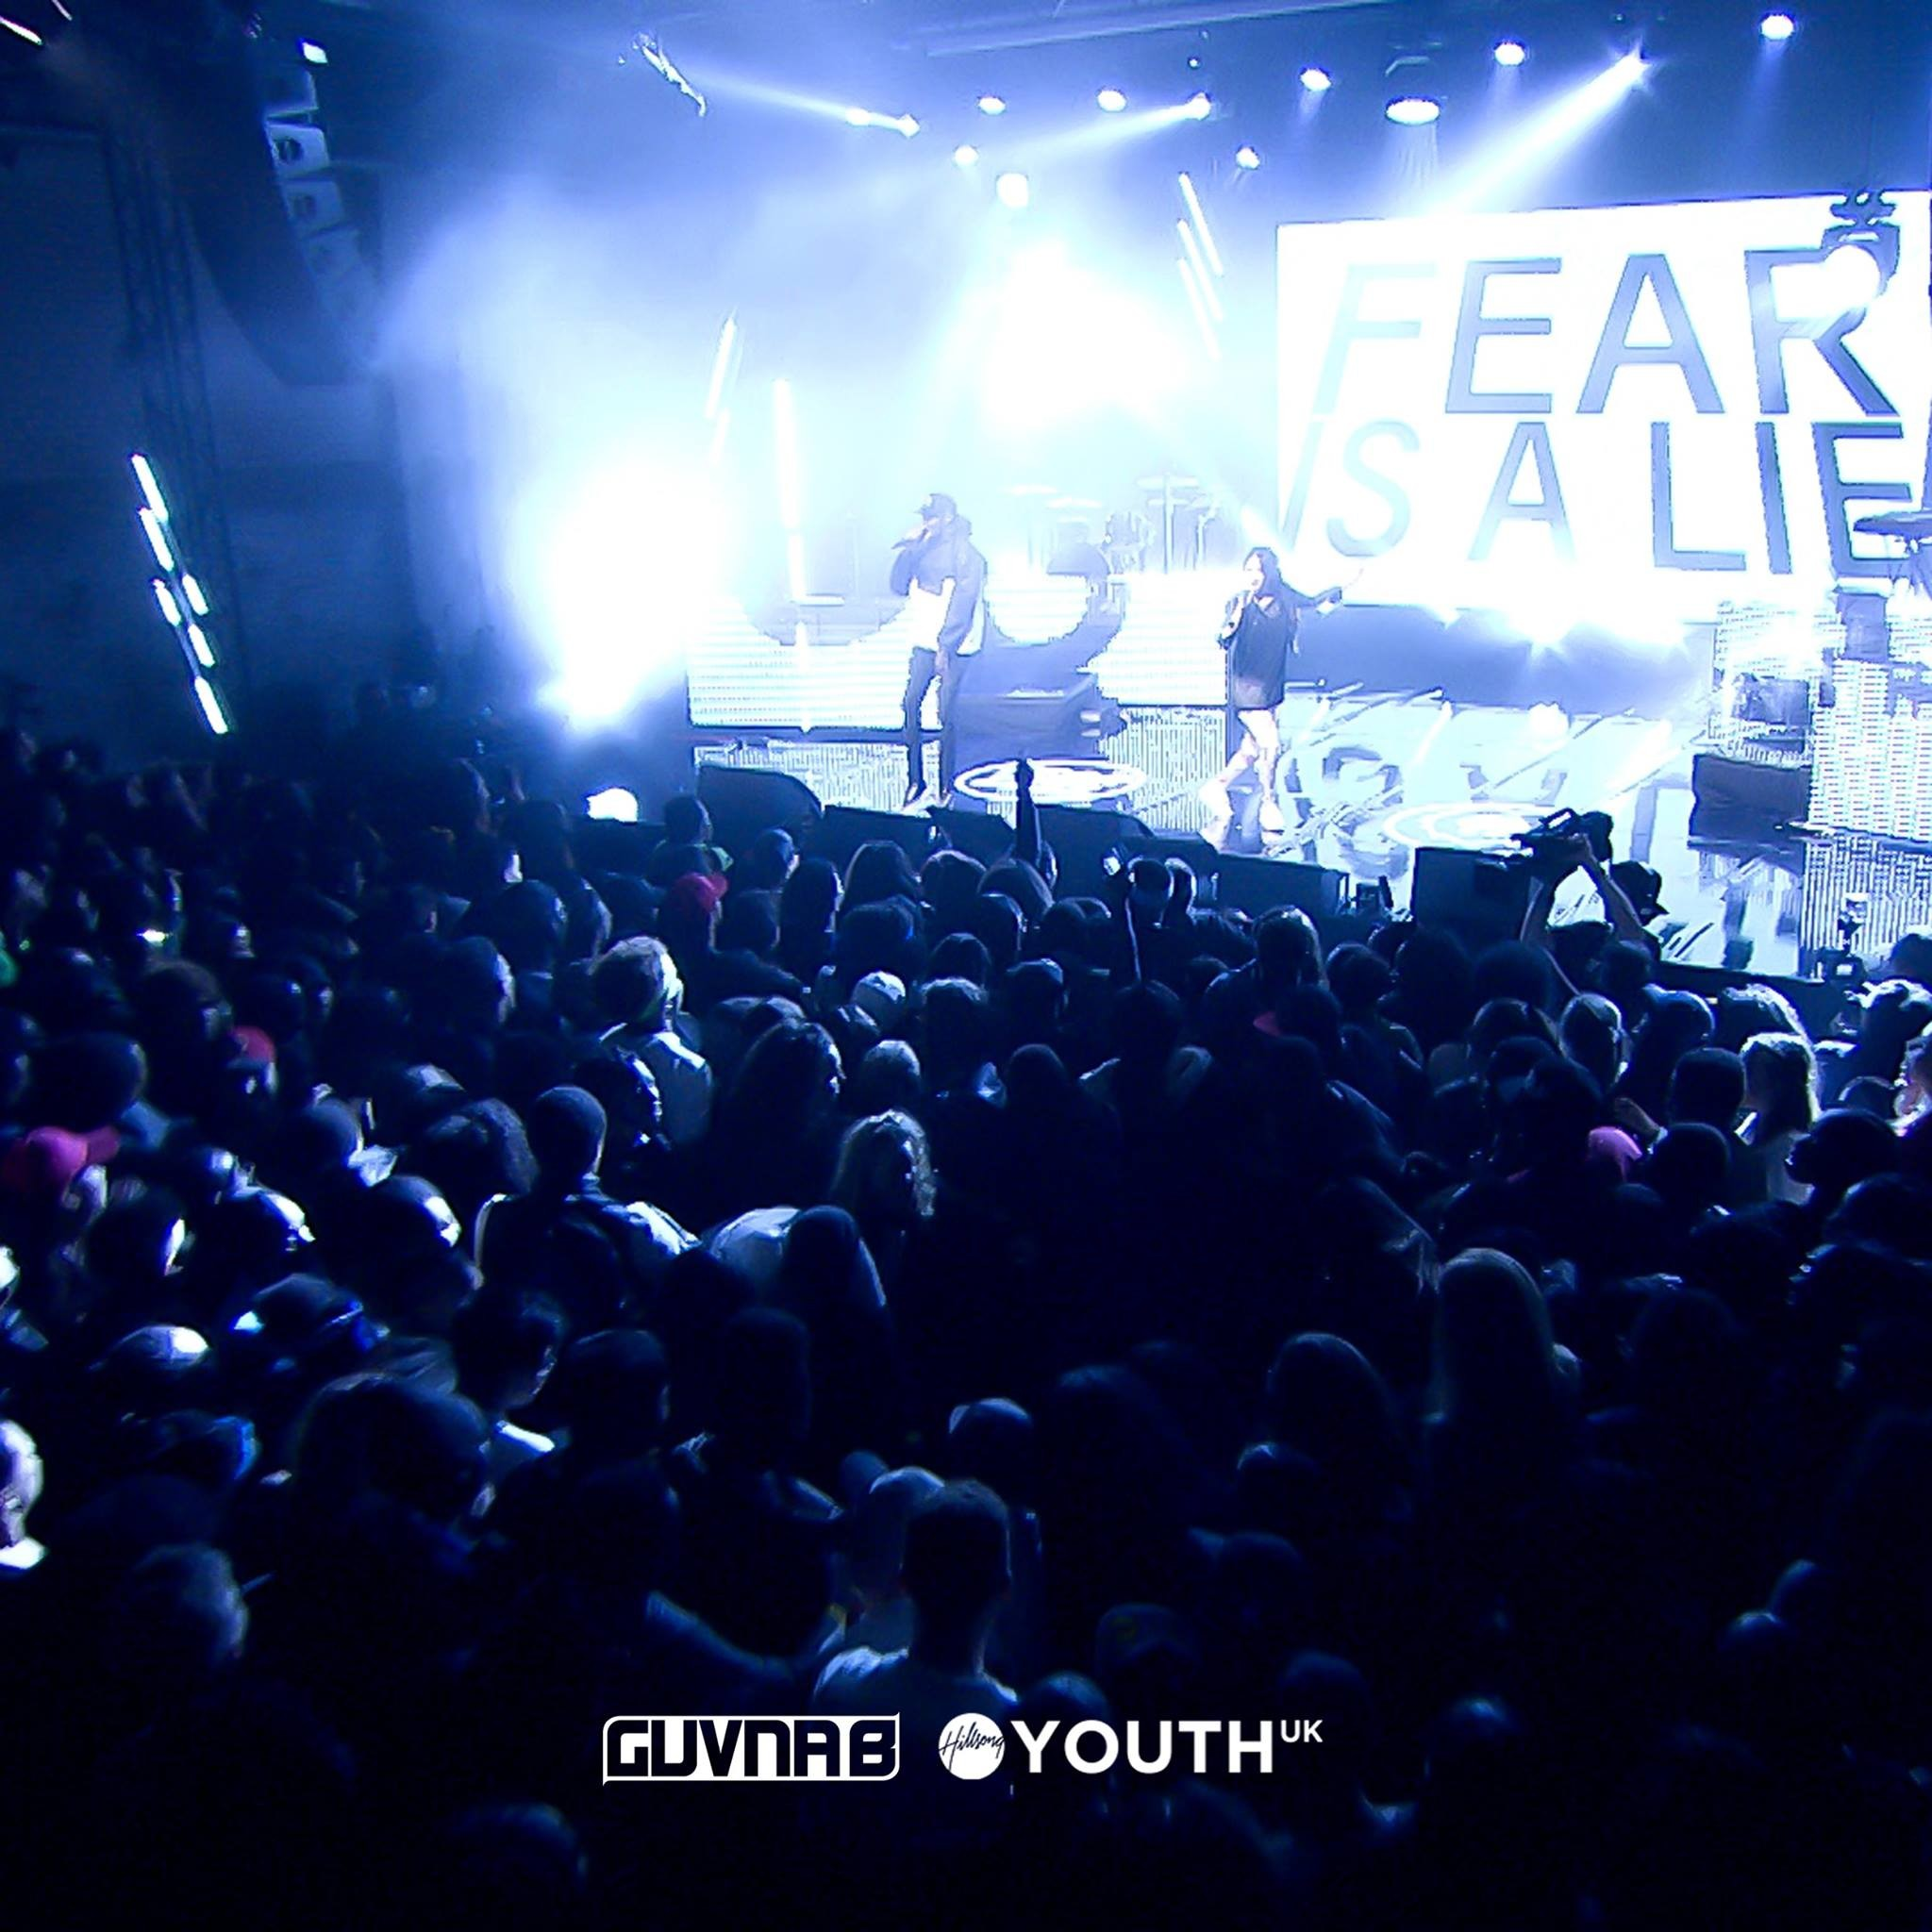 Guvna B & Hillsong Youth UK - Fear Is A Lie